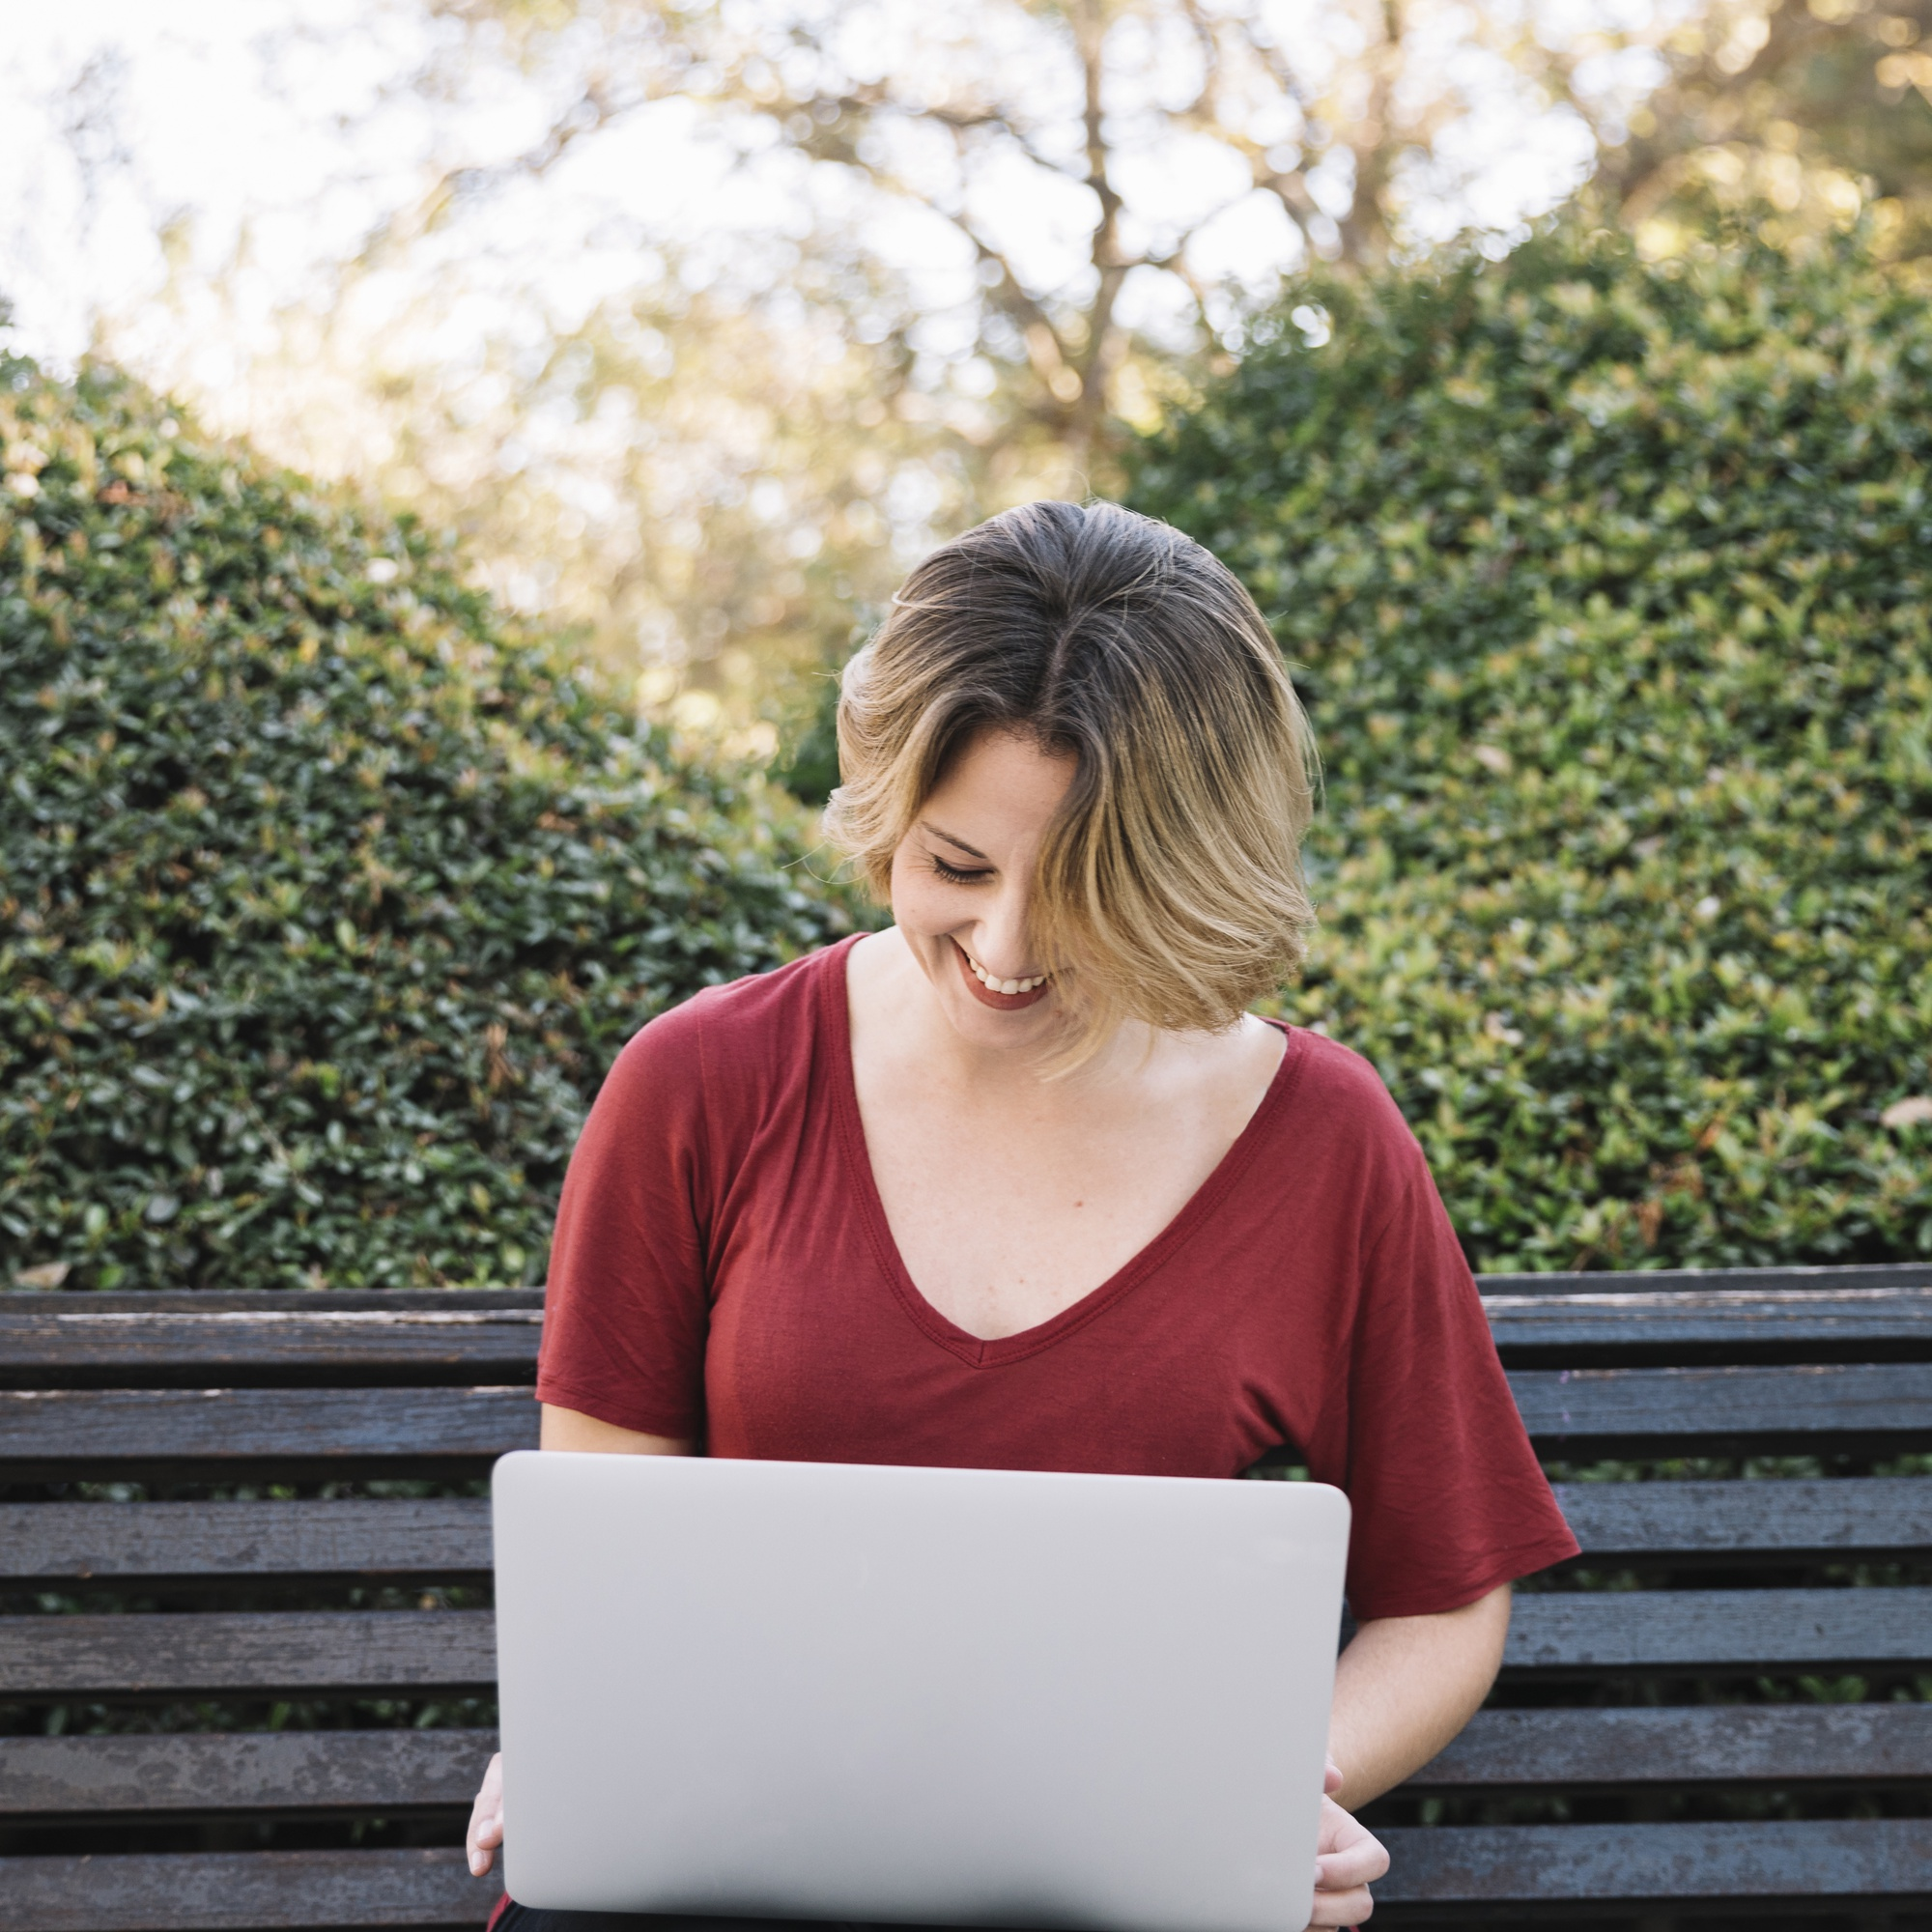 Laughing woman using laptop in park